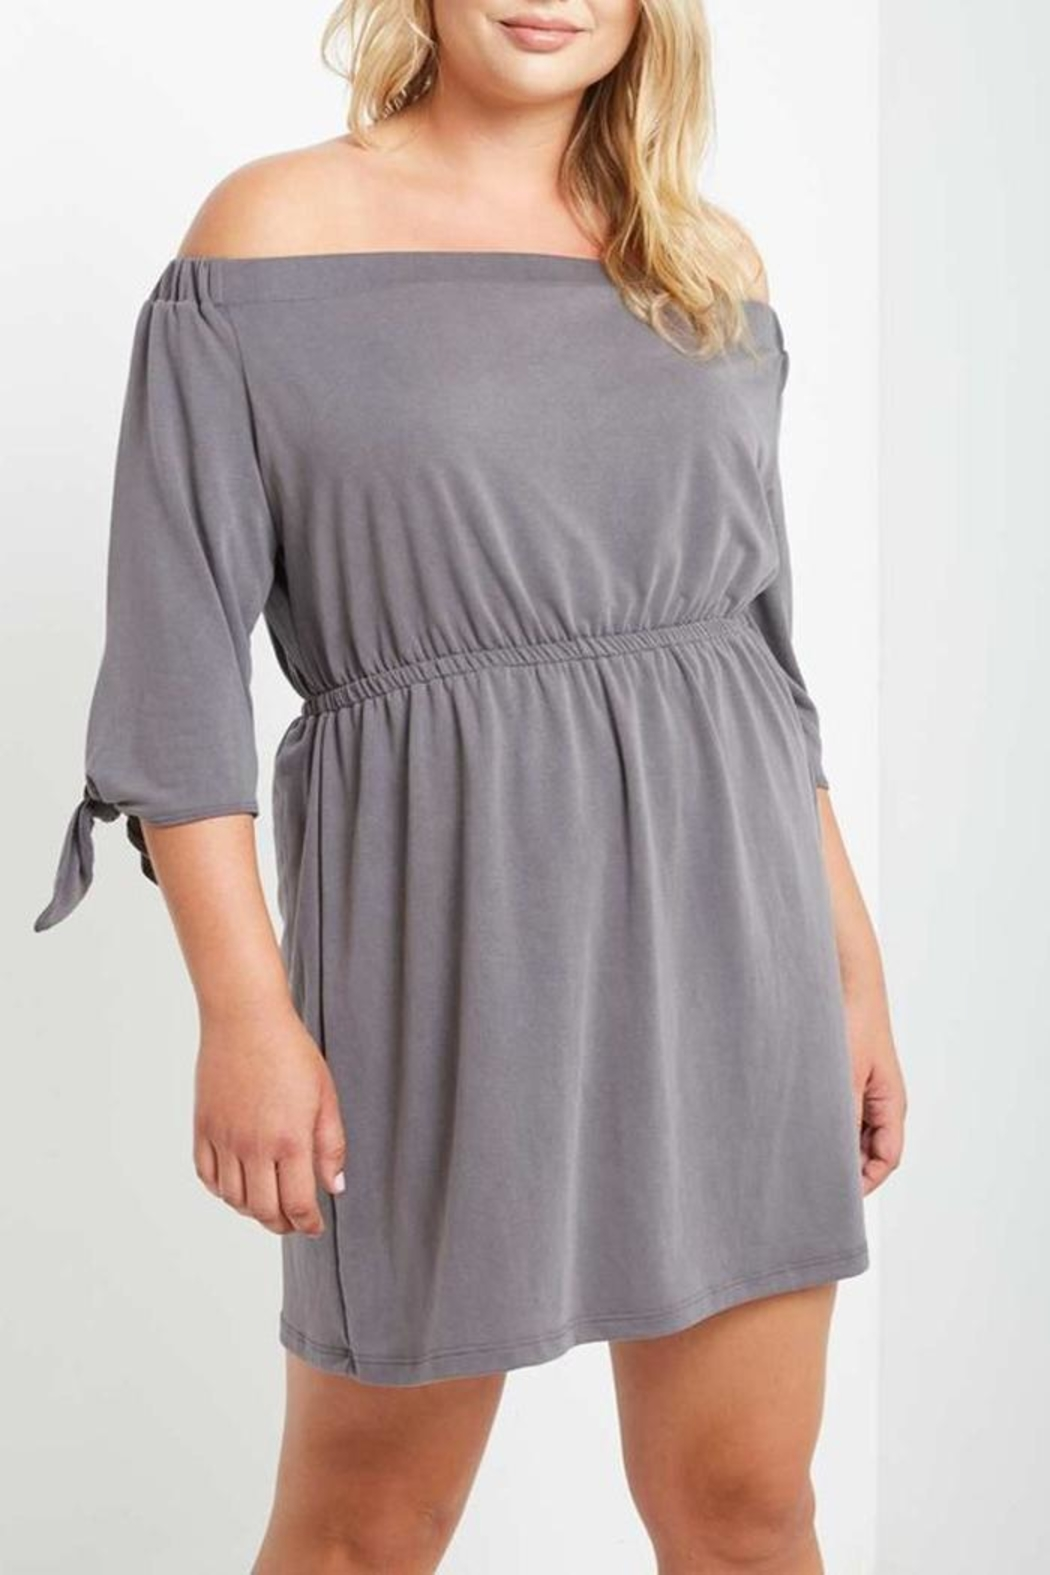 Mai Tai Charwal Off-Shoulder Dress - Front Full Image